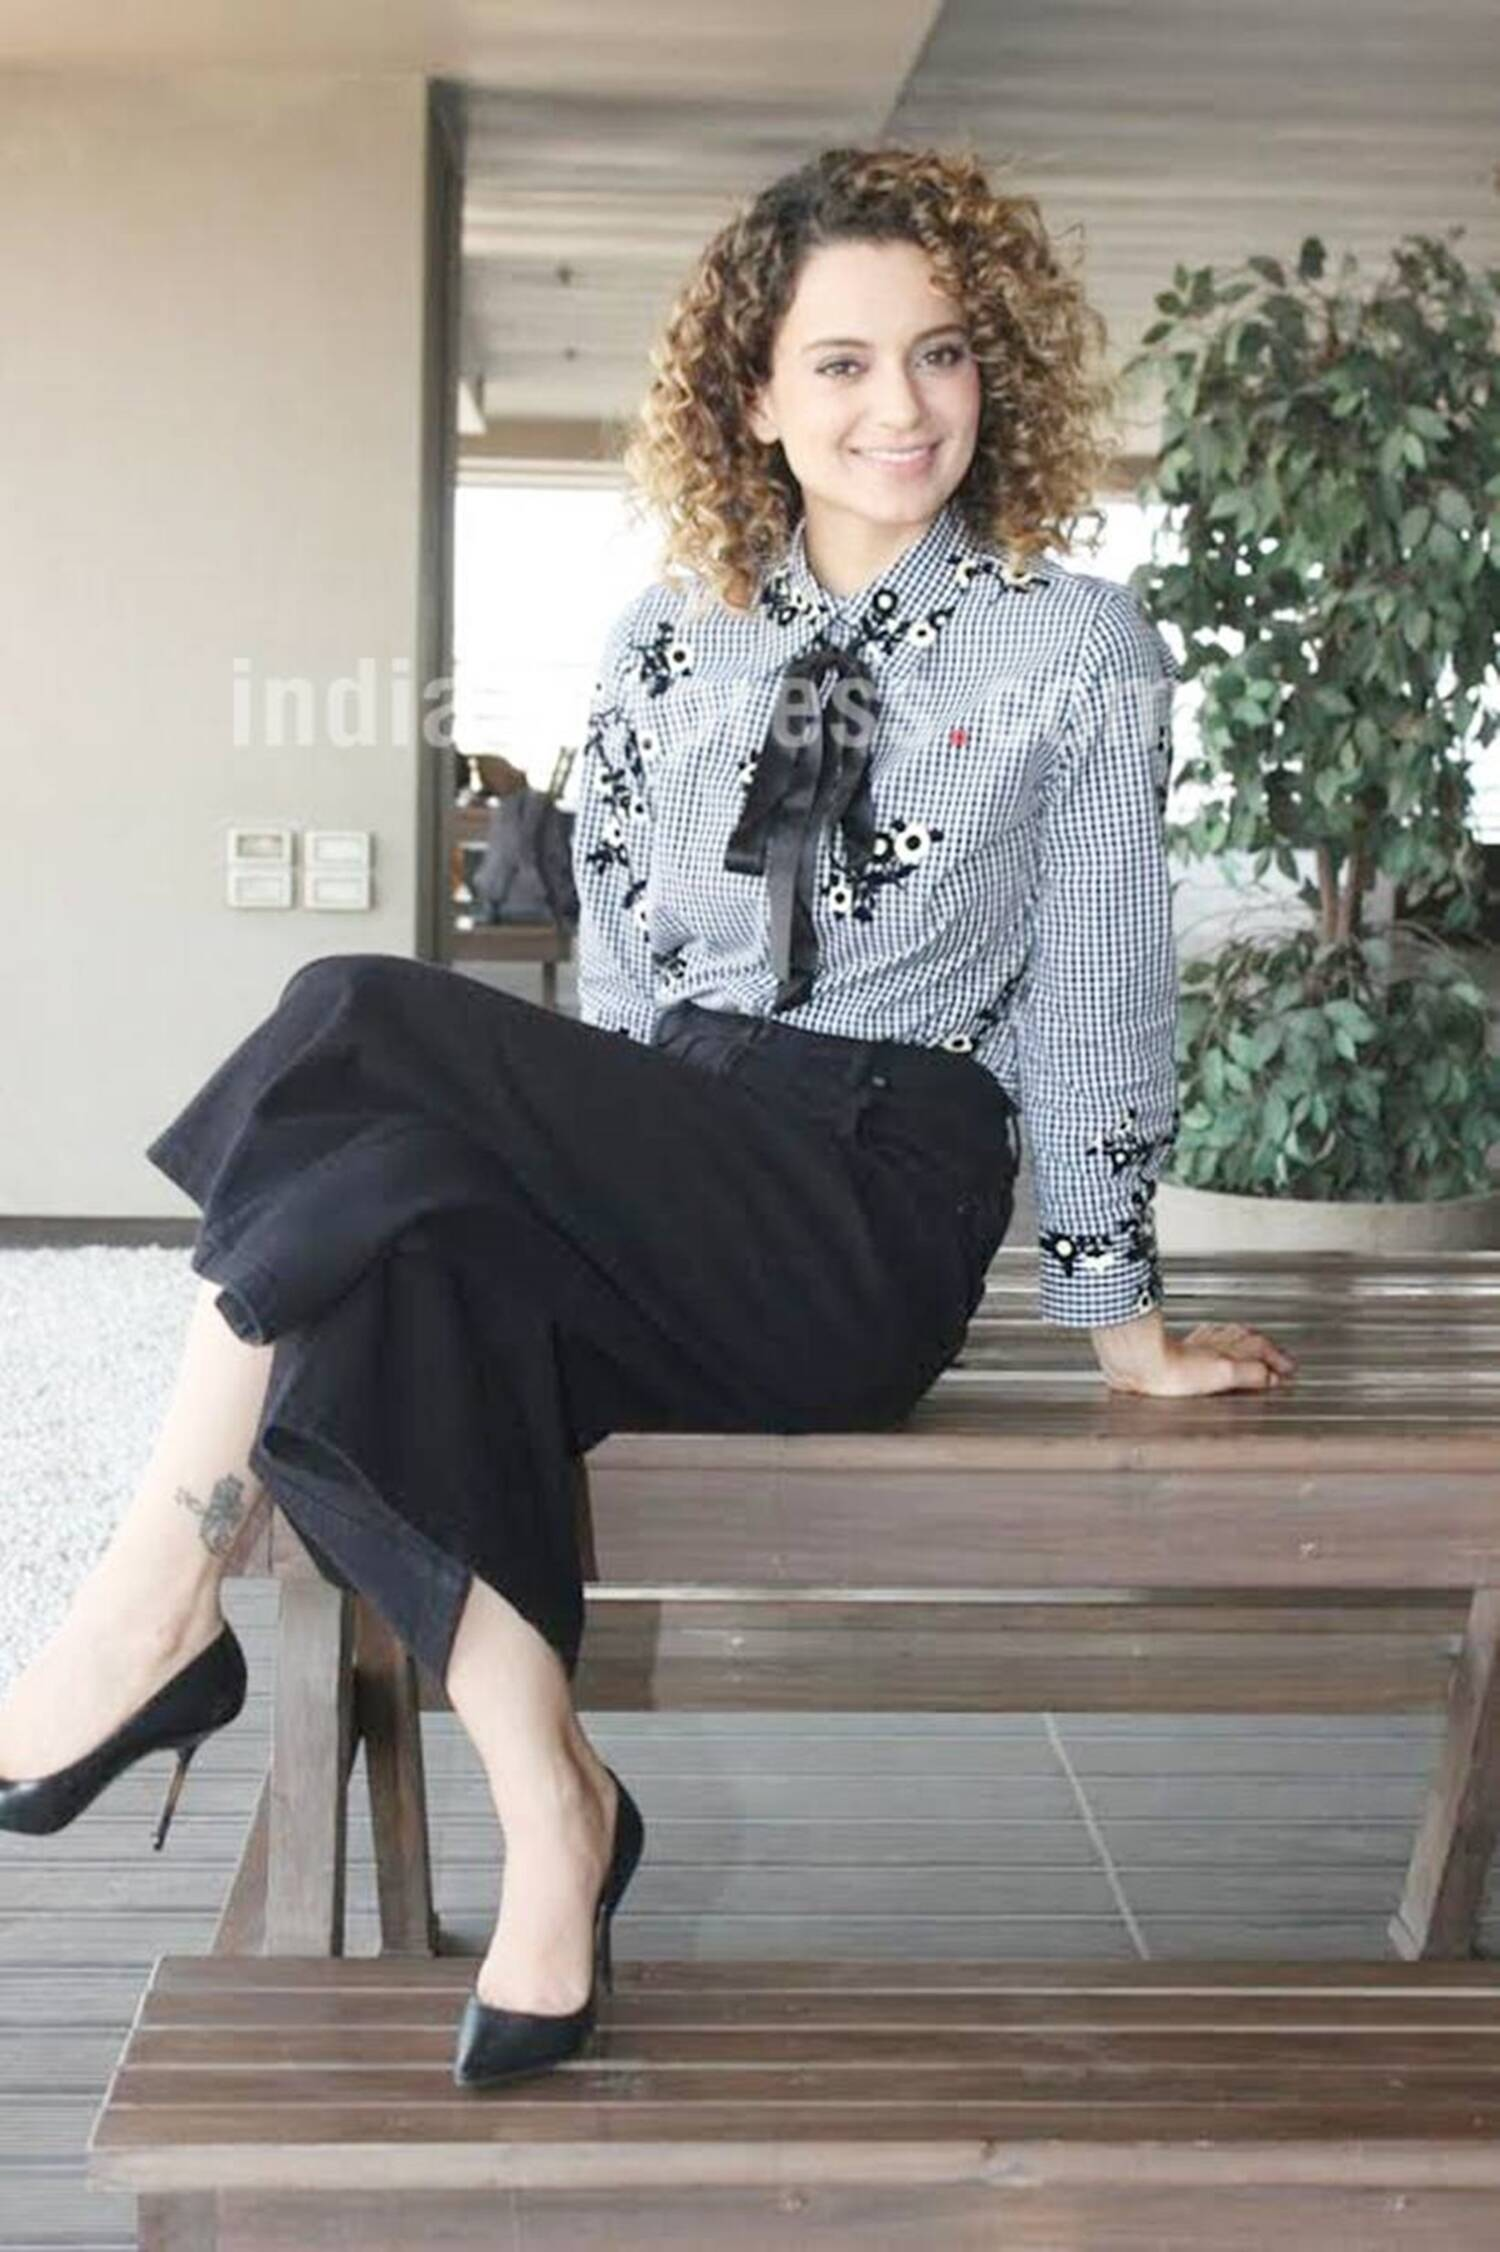 kangana ranaut, happy birthday kangana ranaut, kangana ranaut birthday, hbd kangana ranaut, kangana ranaut fashion, kangana ranaut style, kangana ranaut latest photos, kangana ranaut latest news, kangana ranaut images, kangana ranaut pictures, kangana ranaut updates, celeb fashion, bollywood fashion, indian express, india express news